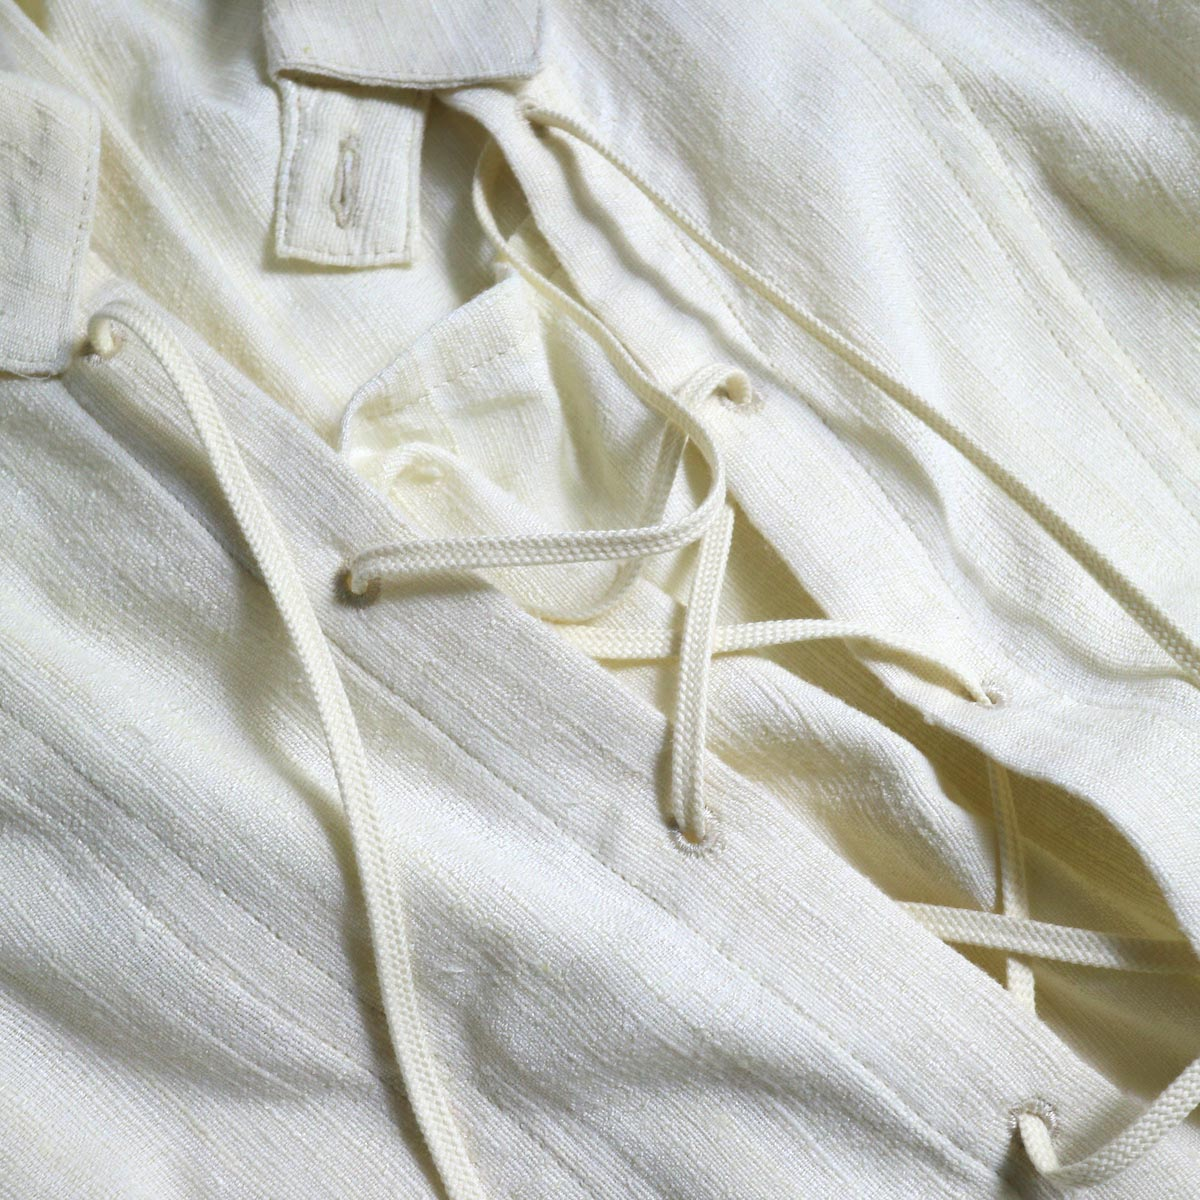 ARCHI / ANISE BLOUSE (natural) レース紐